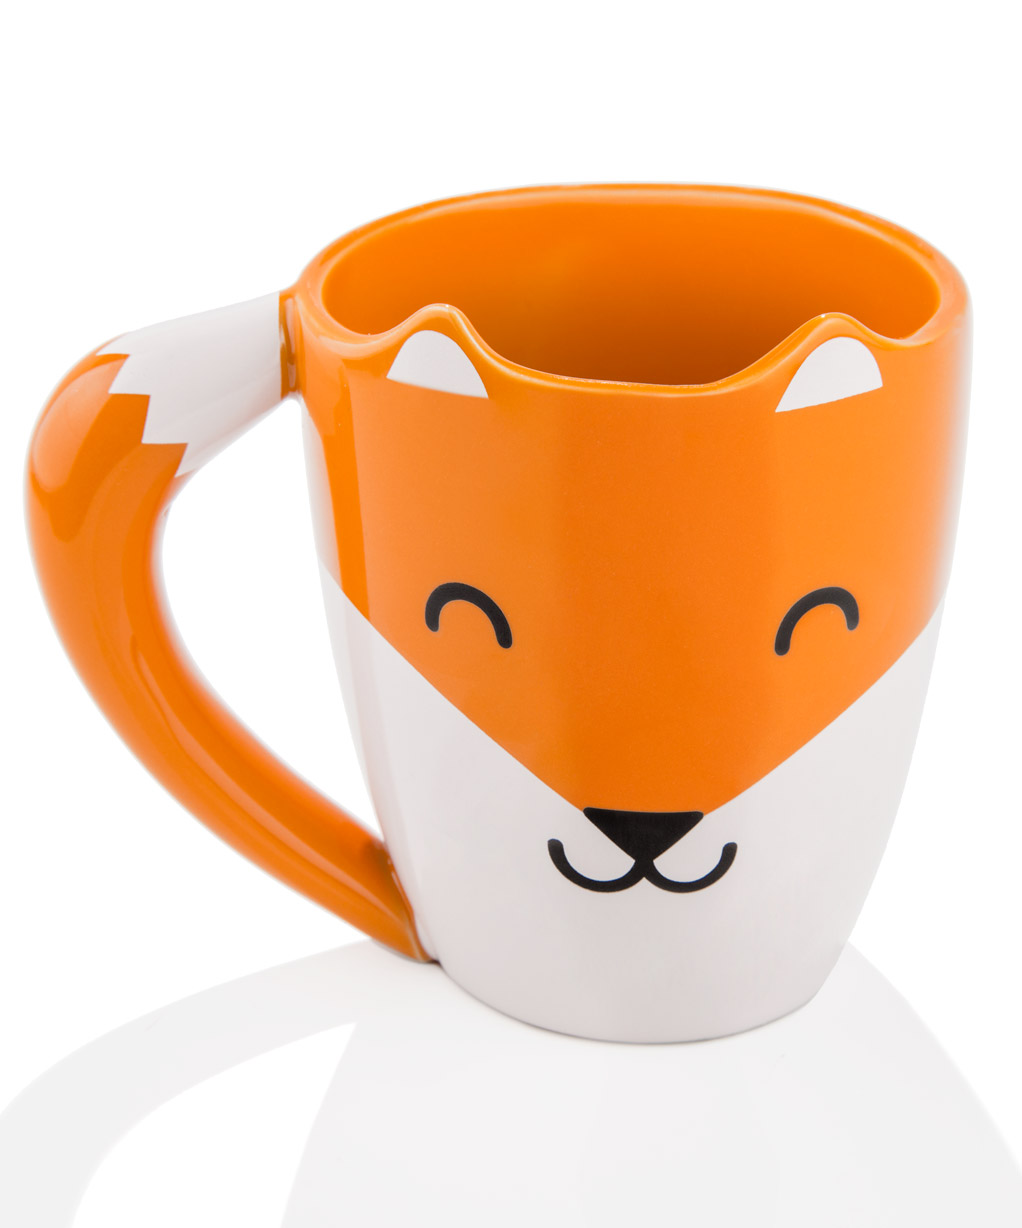 fox mug cute drinkware that looks like a smiling fox. Black Bedroom Furniture Sets. Home Design Ideas